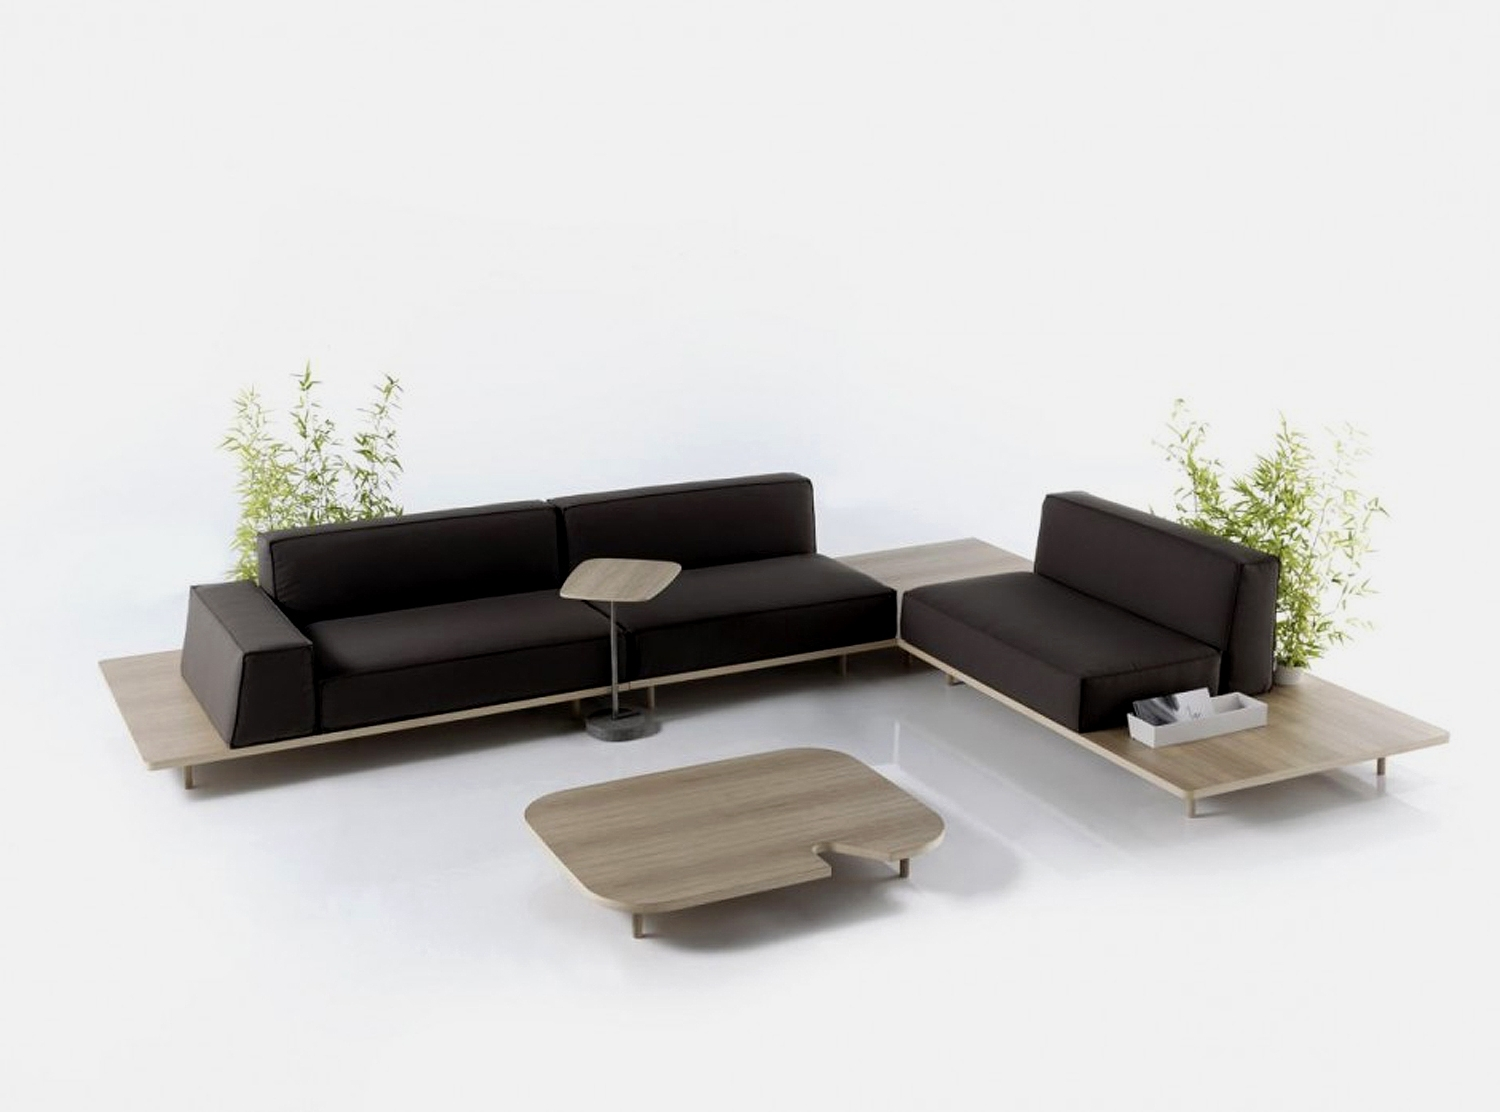 Famous Contemporary Sofa Chairs Intended For Contemporary Furniture Designs Ideas Modern Office Sofa (View 3 of 20)